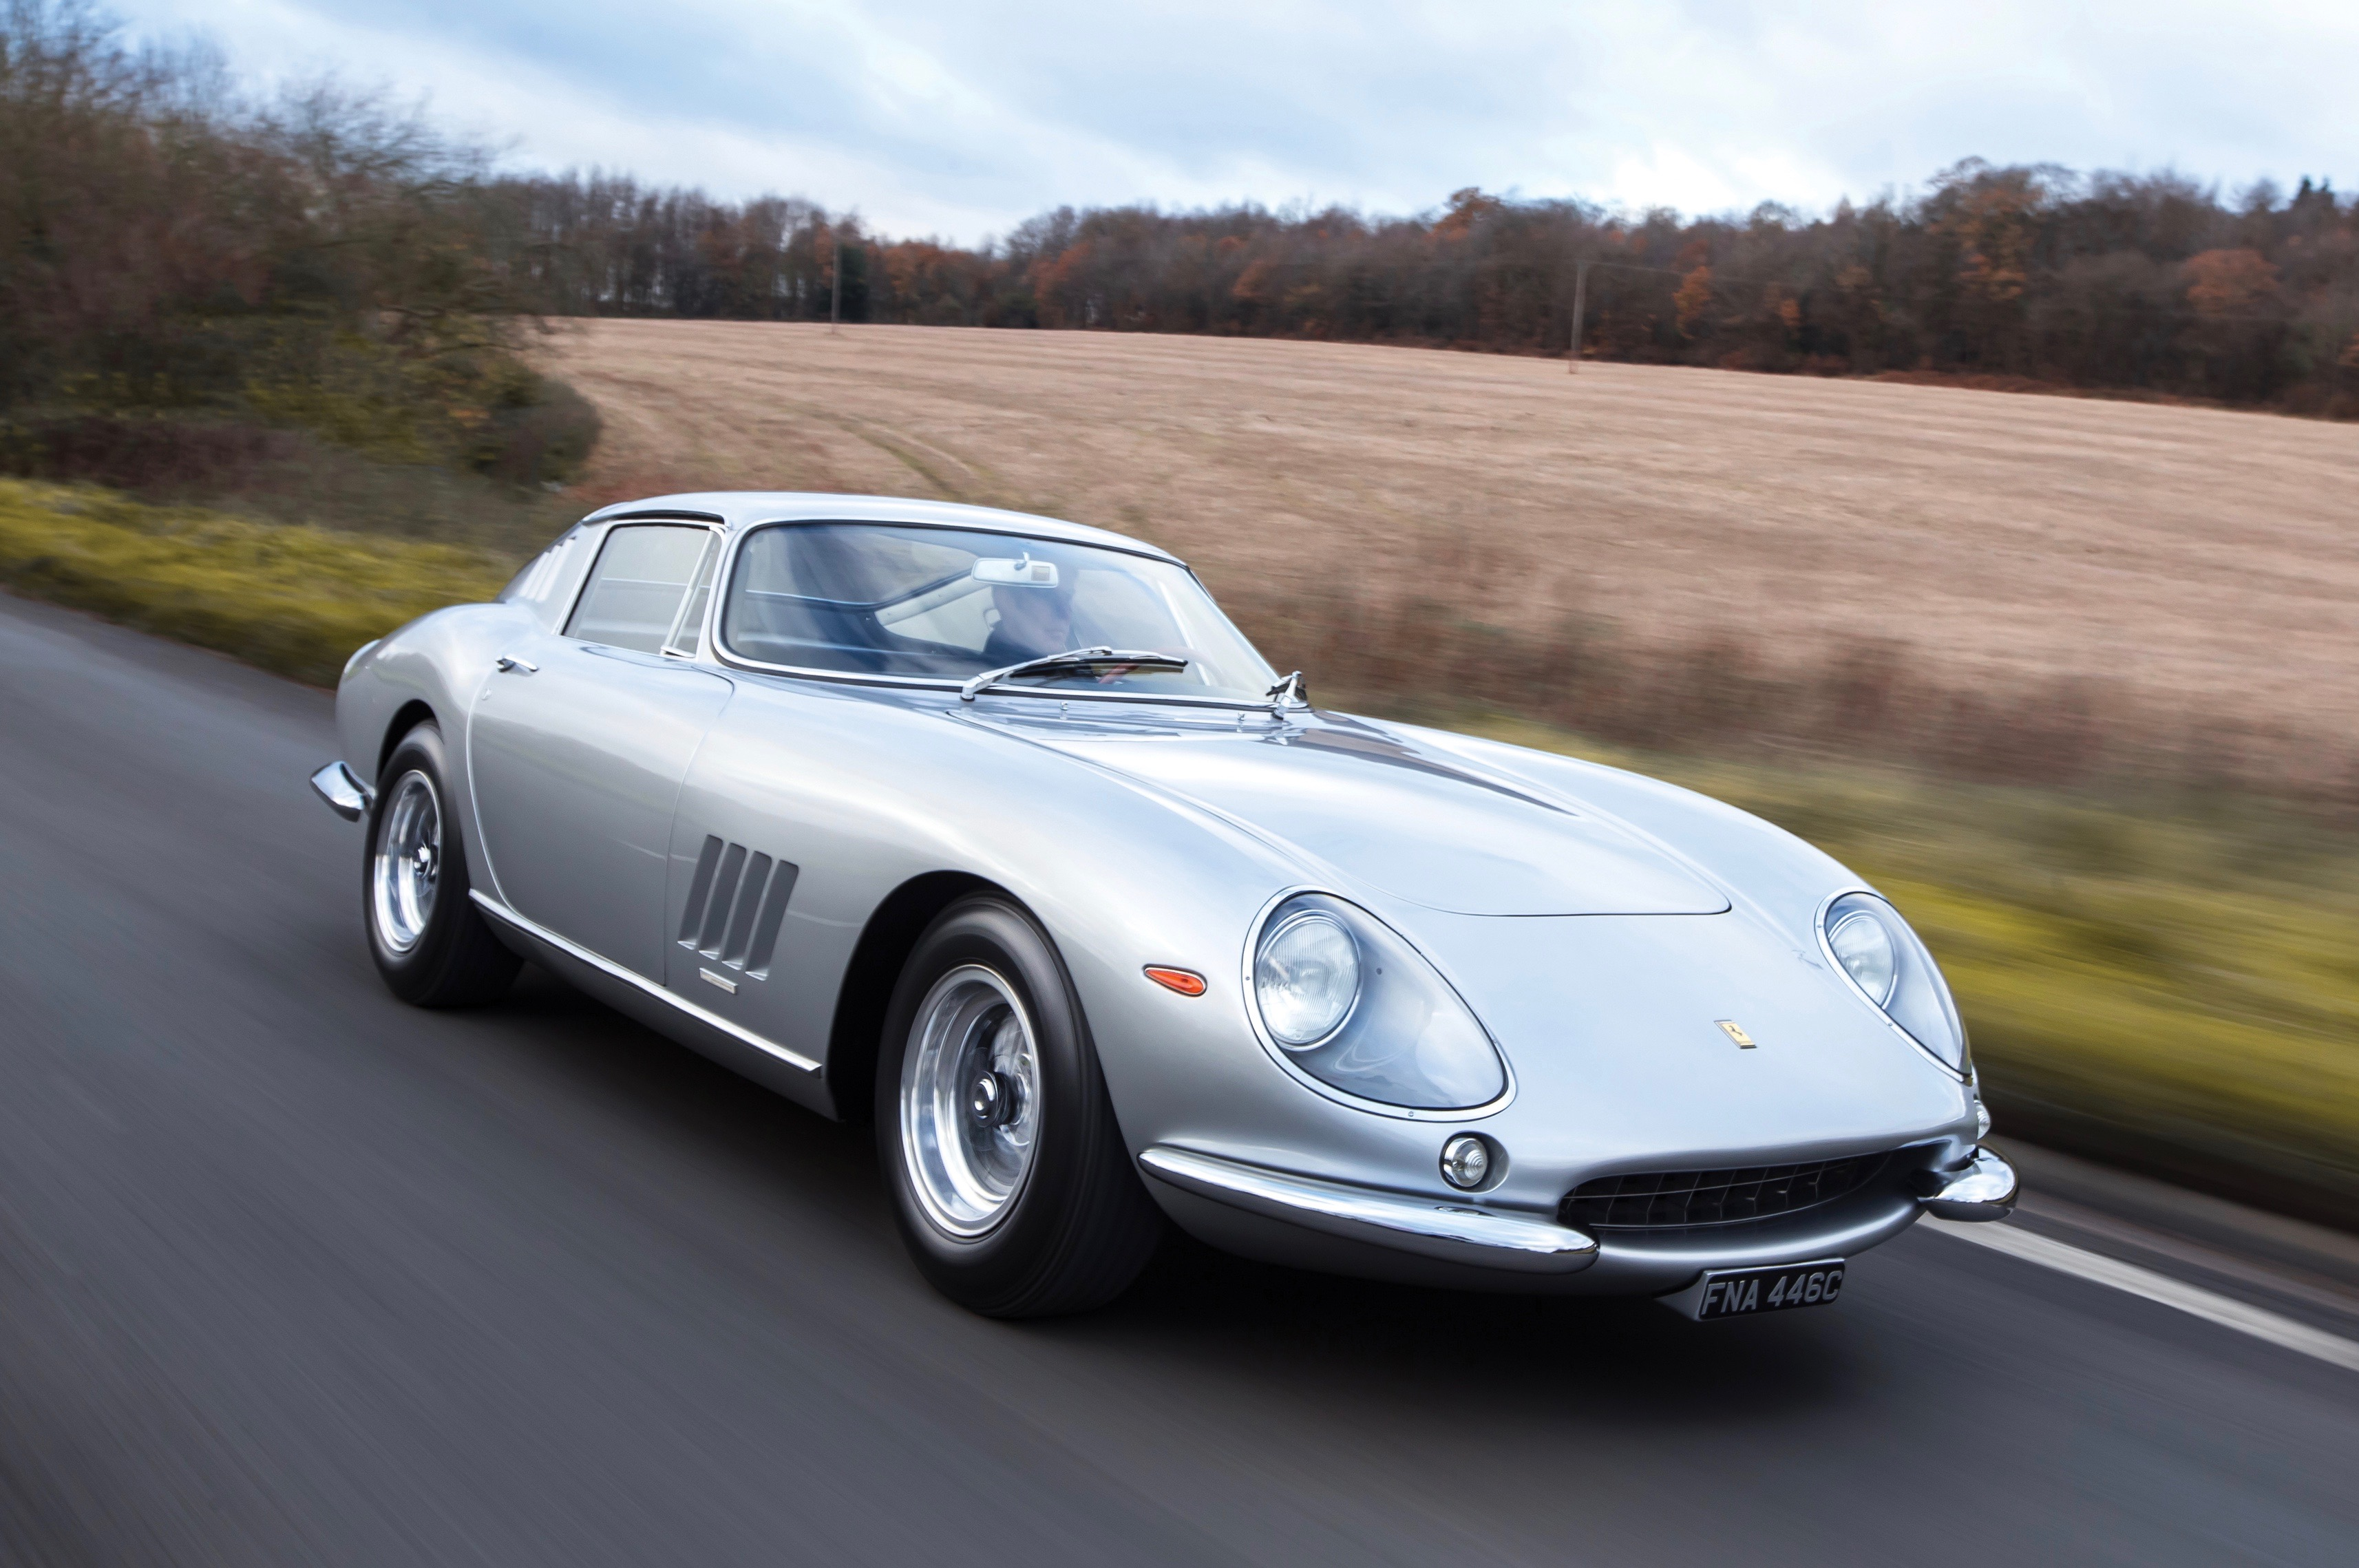 275 GTB, Osca 200 S and rare Porsche headline RM Sotheby's Paris